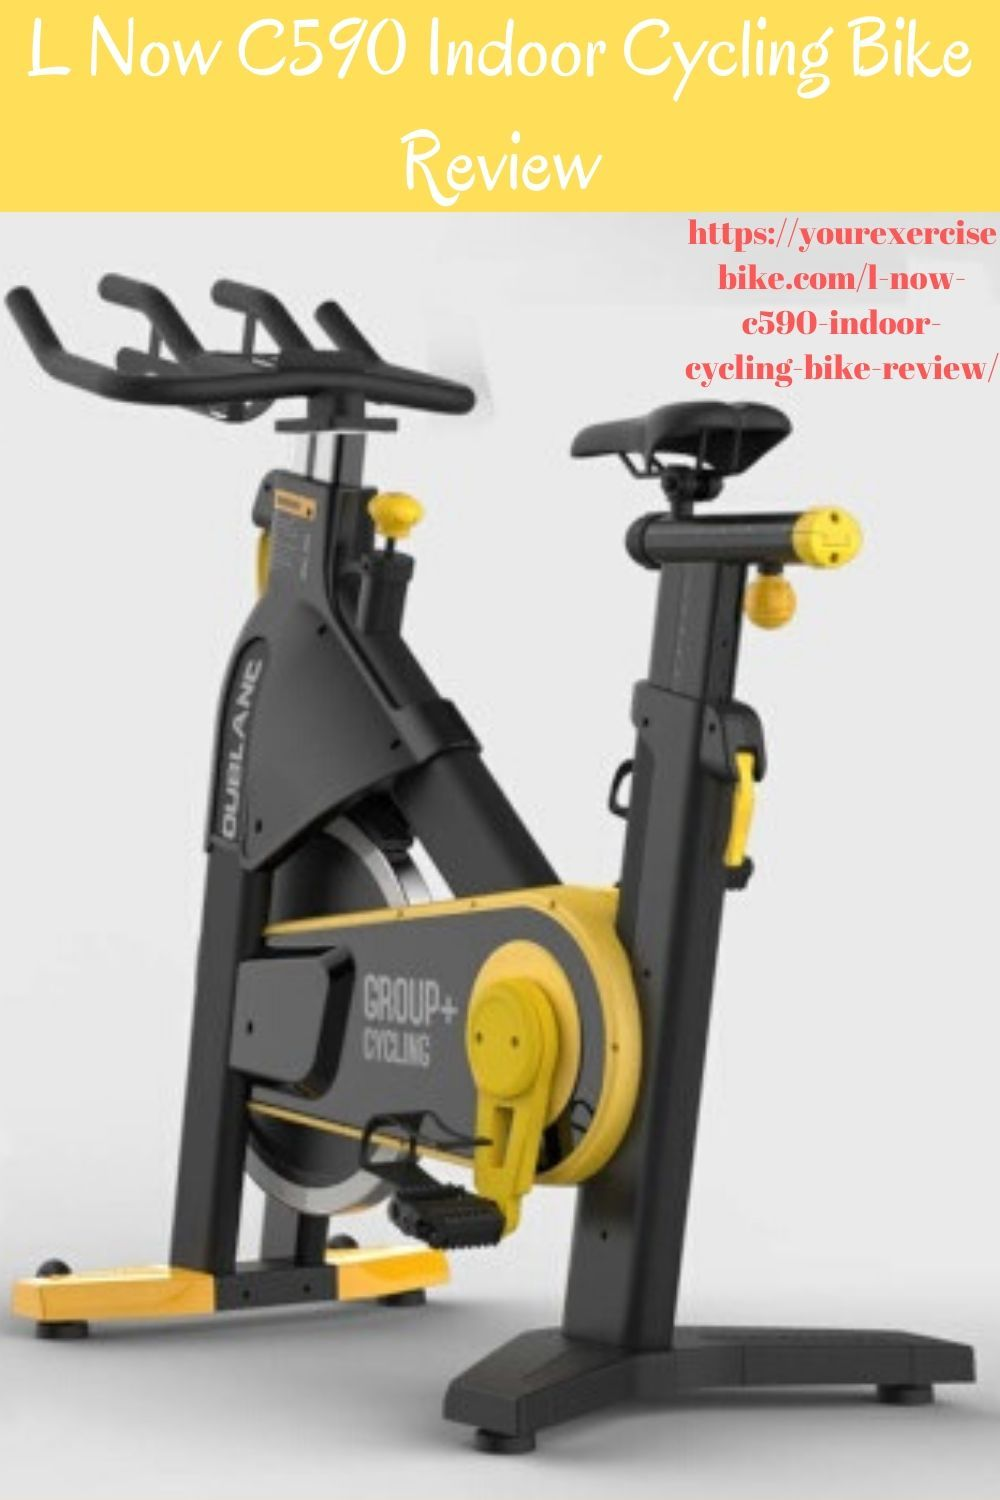 L Now C590 Indoor Cycling Bike Rview Pooboo C590 Pros Cons Price In 2020 Bike Reviews Indoor Cycling Bike Biking Workout